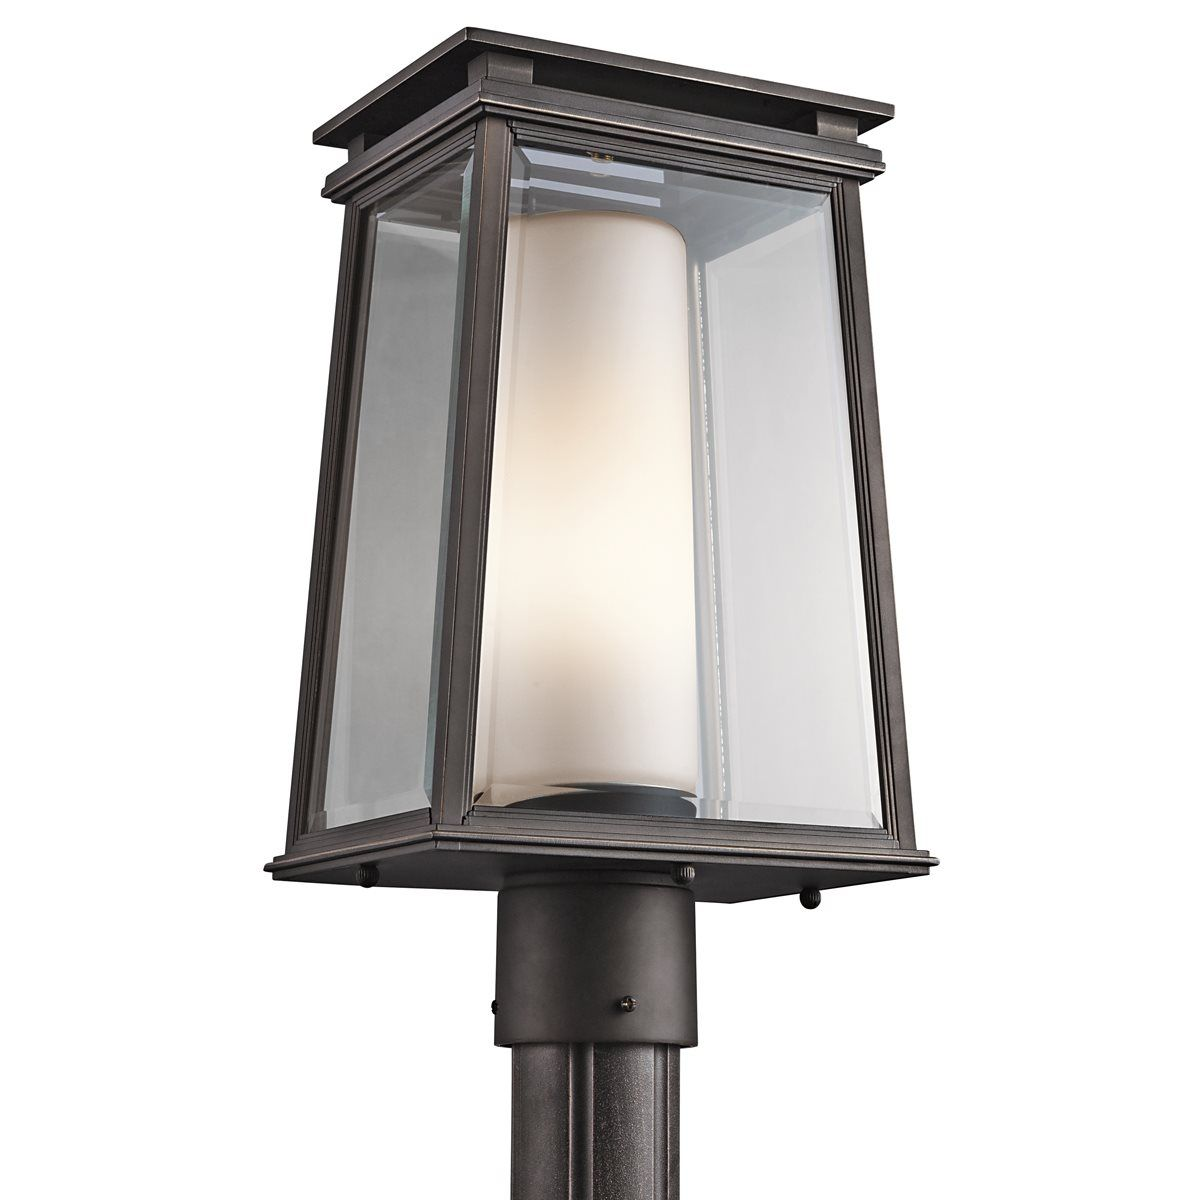 Kichler lighting 49404rz lindstrom modern contemporary outdoor kichler lighting 49404rz lindstrom modern contemporary outdoor post lantern light kch 49404rz arubaitofo Gallery